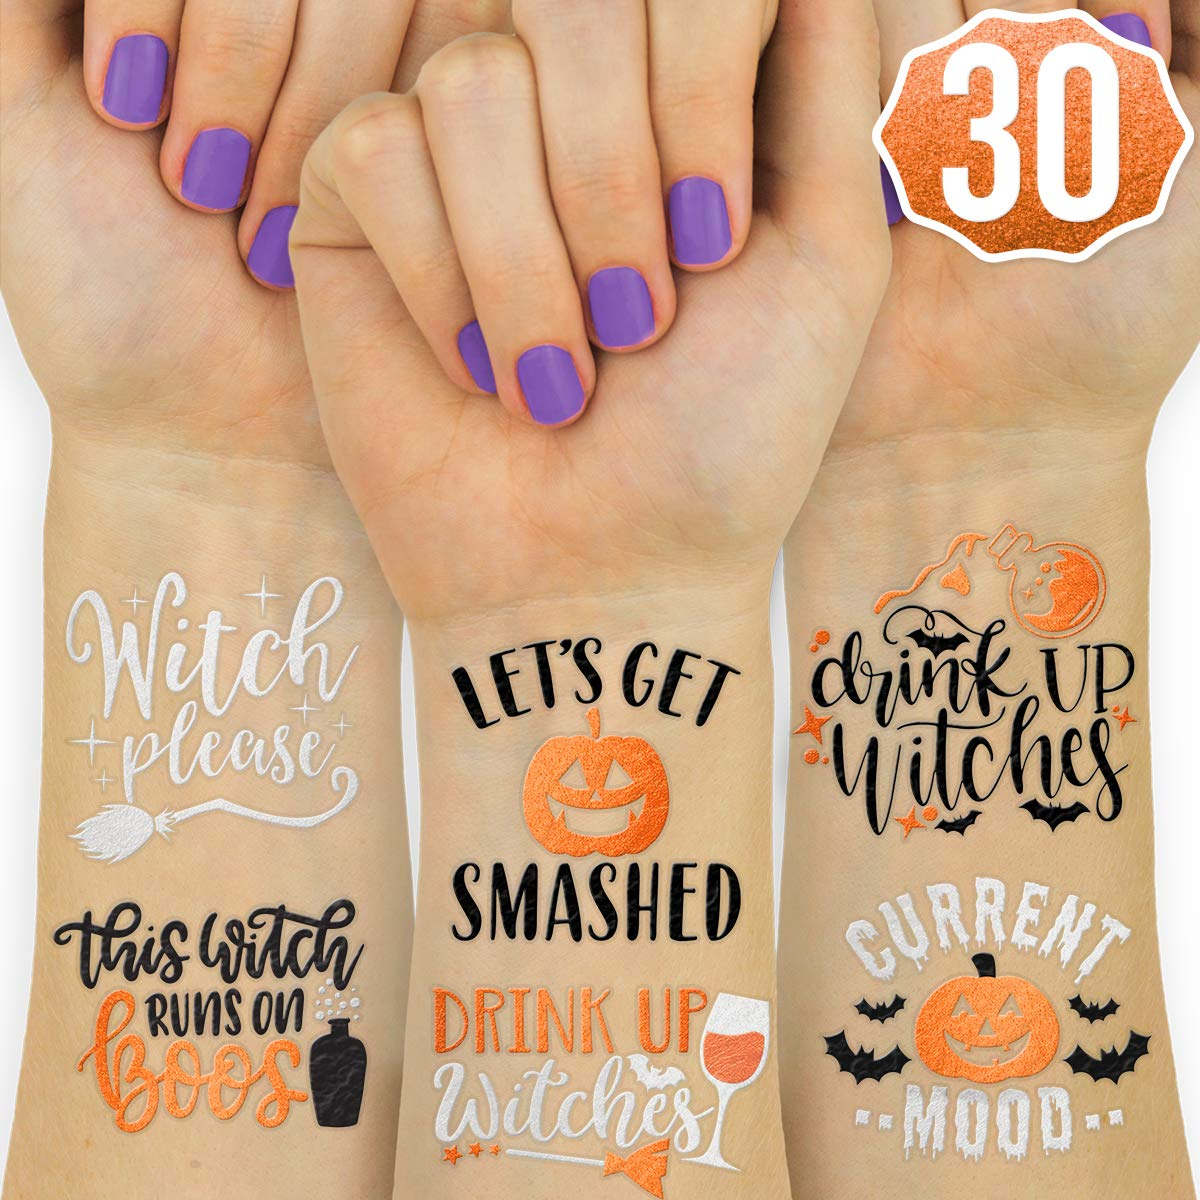 xo  Fetti Halloween Decorations Temporary Tattoos - 30 styles   Drink Up Witches  Witch Please  Halloween Party Supplies